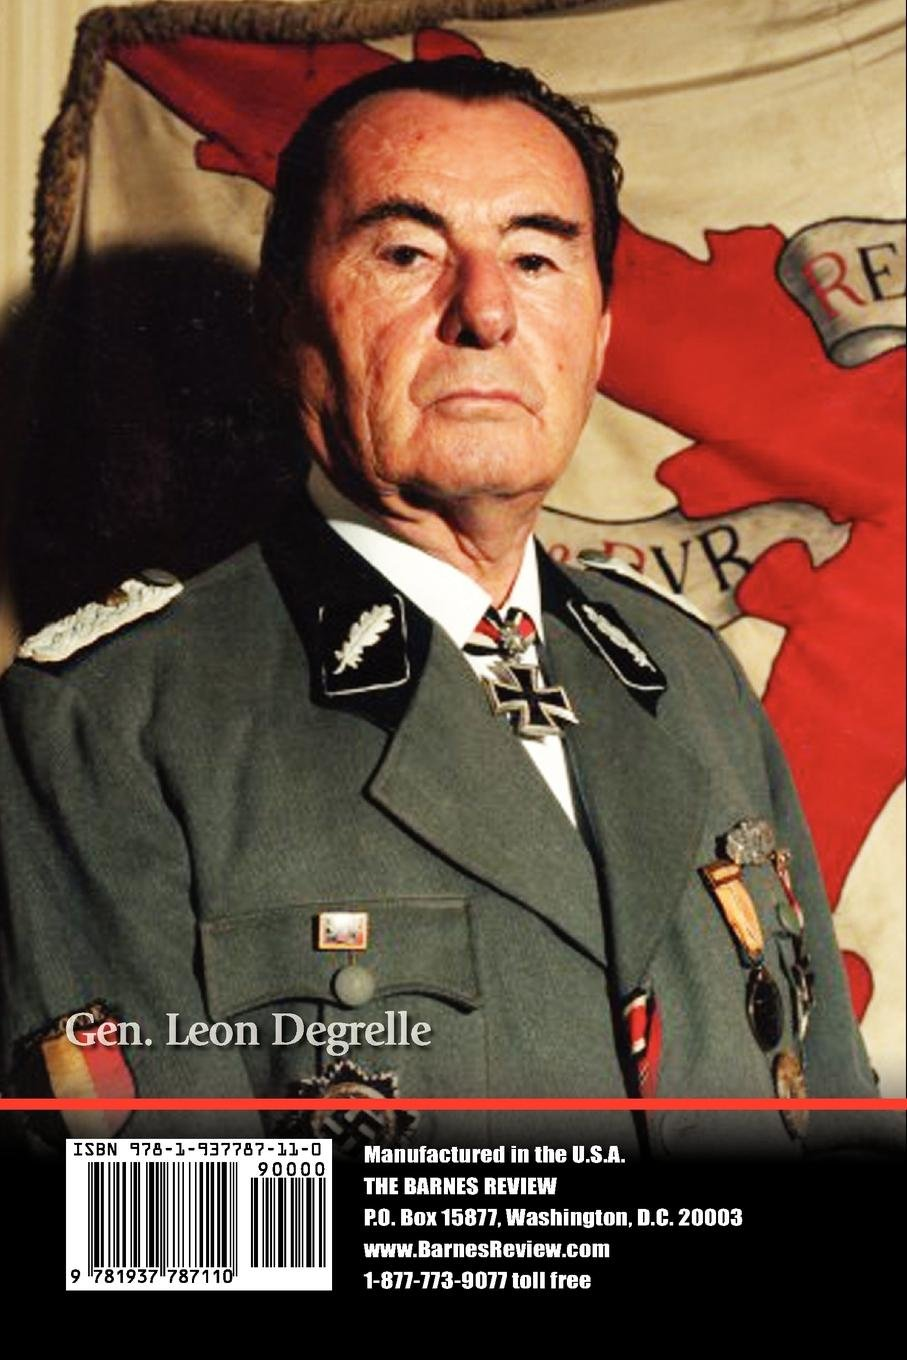 Leon Degrelle: biography and books